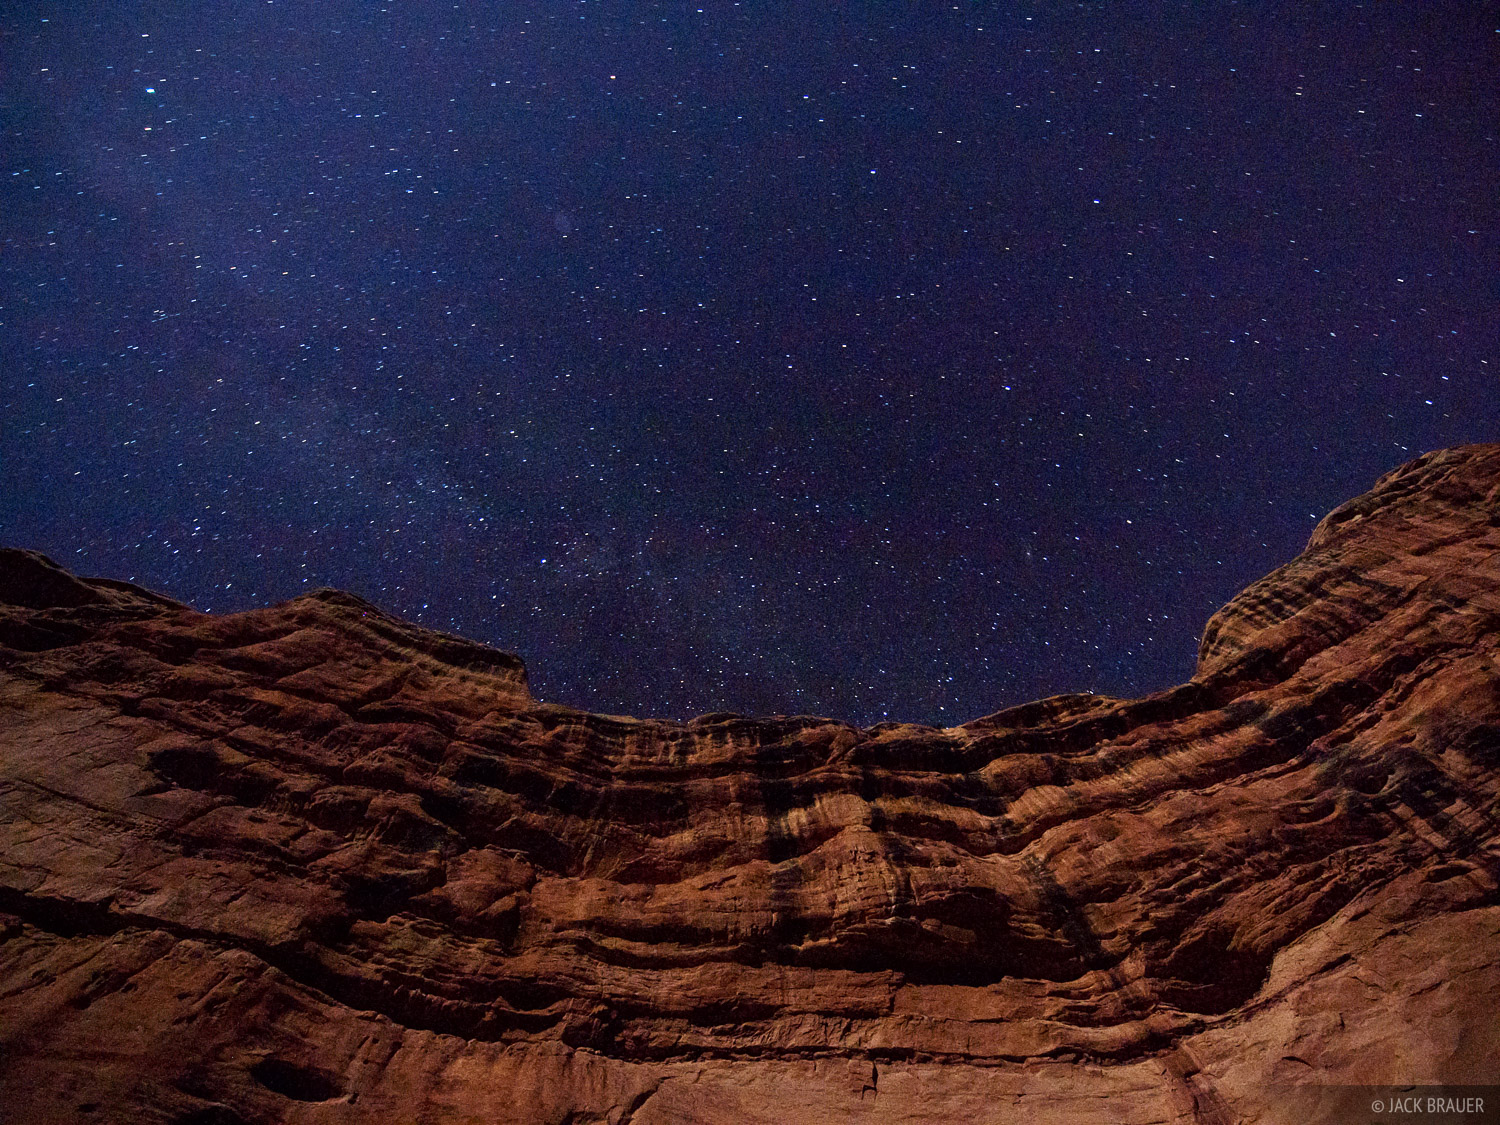 Sheiks Canyon, Grand Gulch, Utah, stars, Bears Ears National Monument, photo